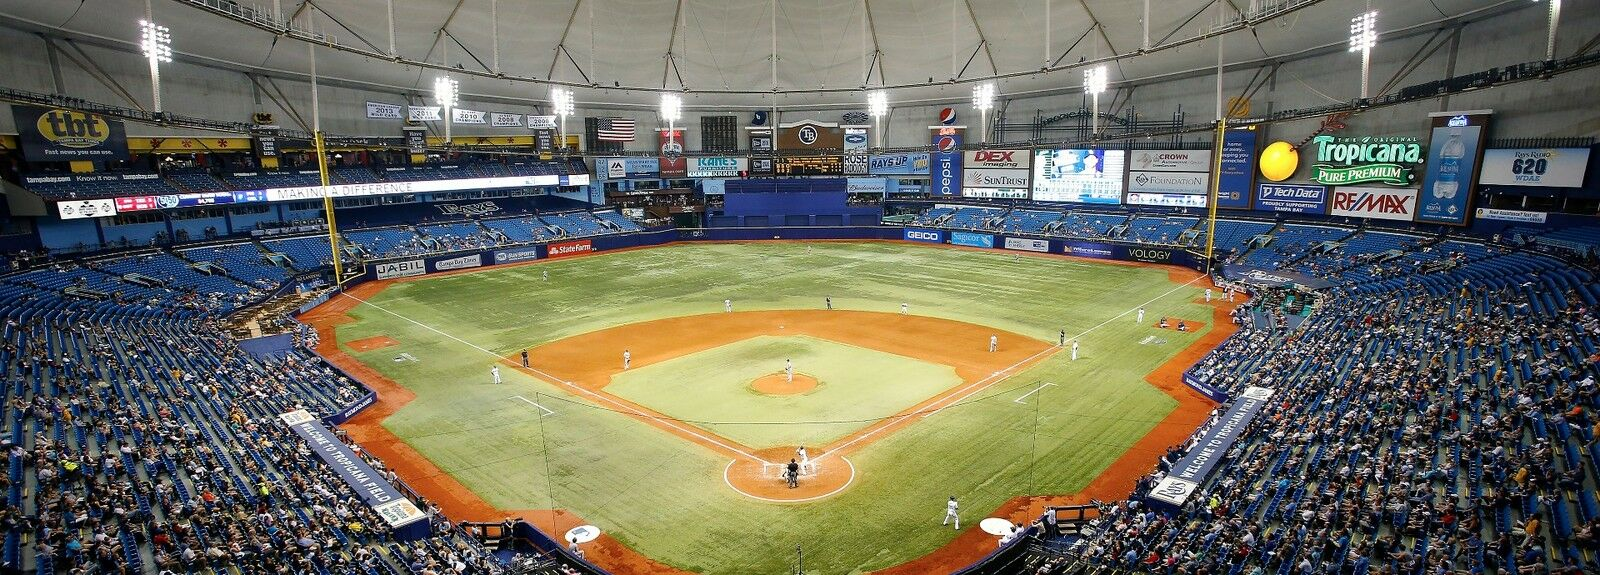 Los Angeles Angels at Tampa Bay Rays